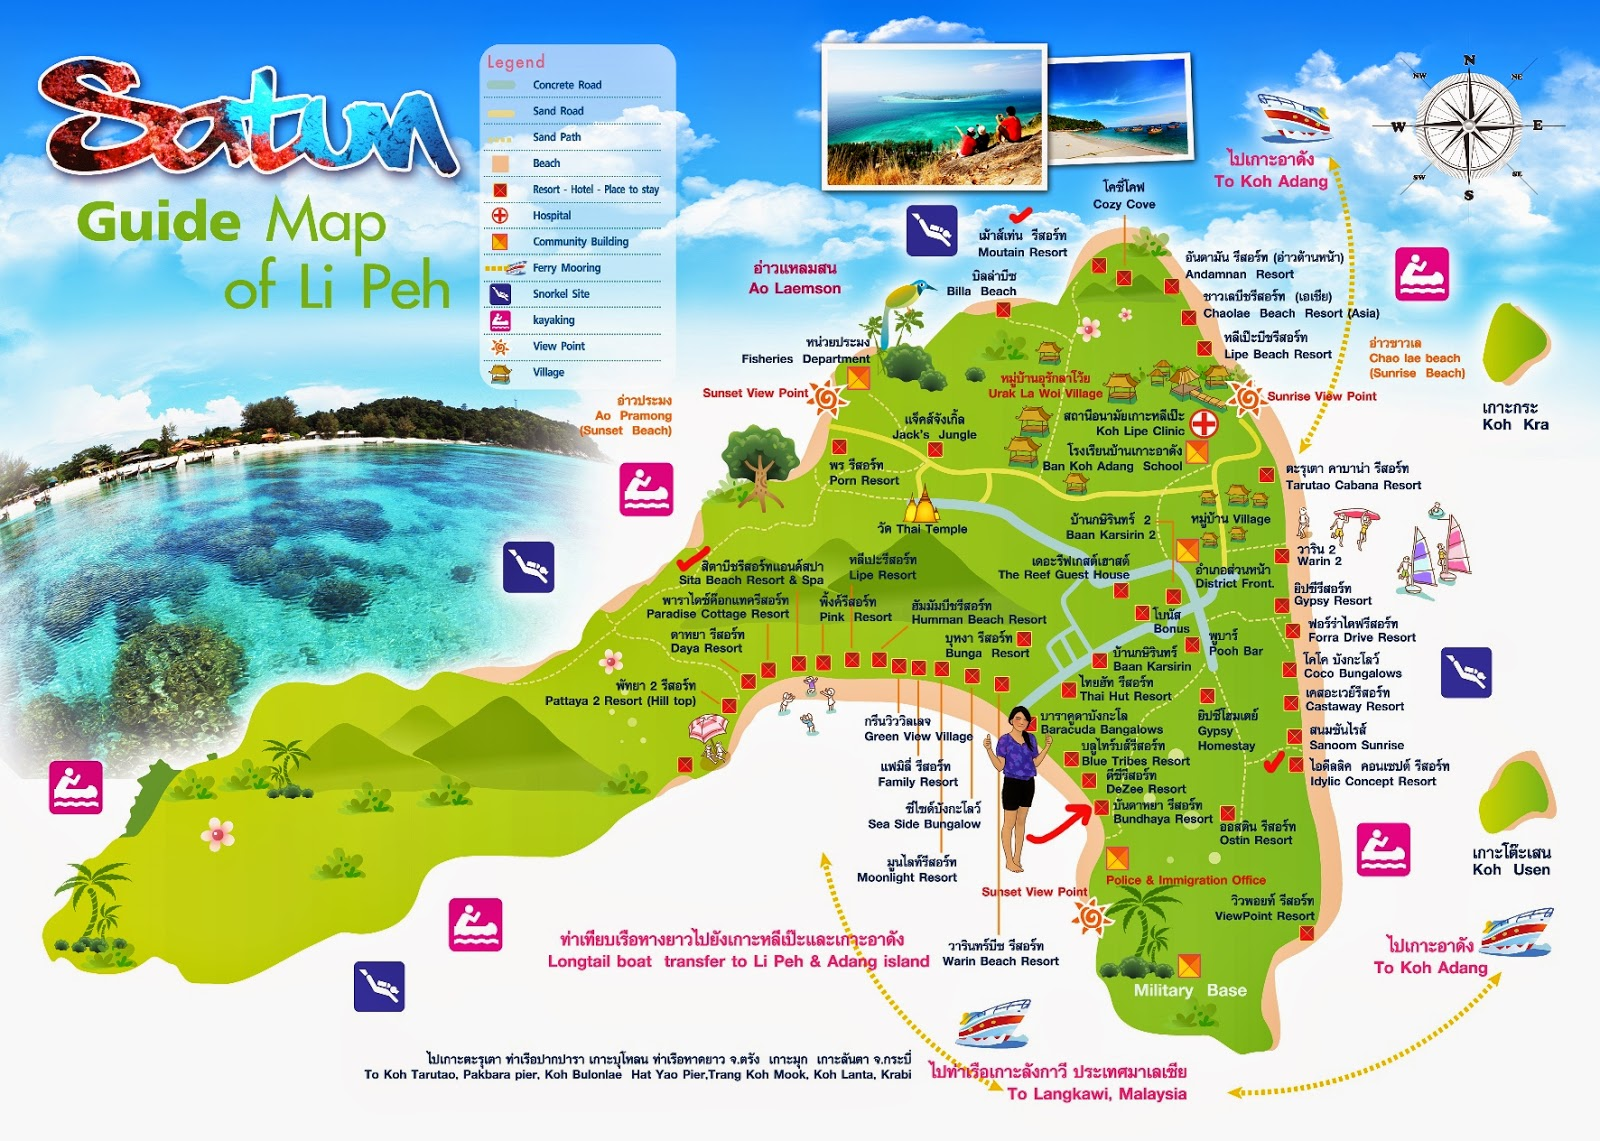 Koh Lipeh Map